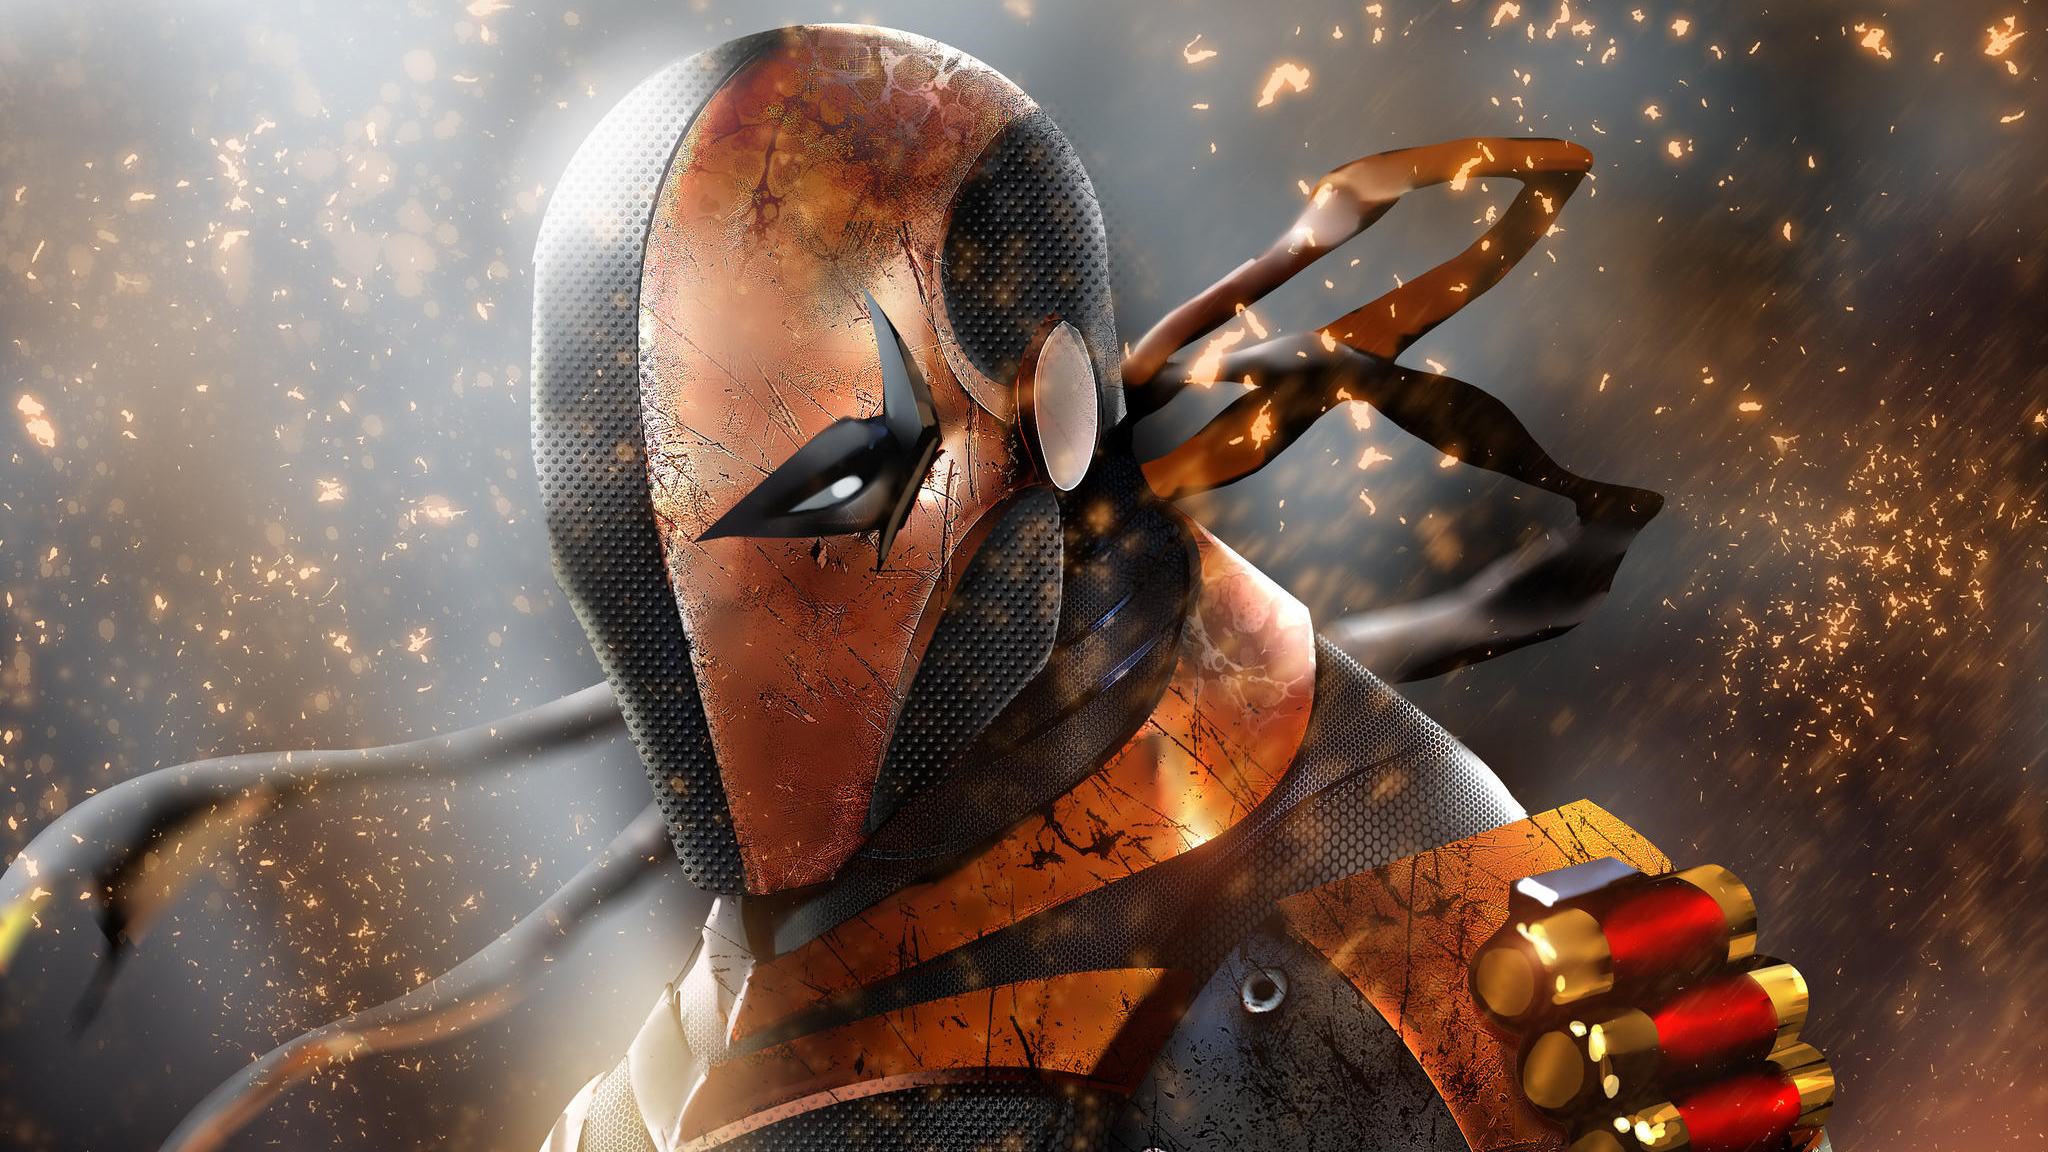 deathstroke new arts 4k 1548527211 - Deathstroke New Arts 4k - supervillain wallpapers, superheroes wallpapers, hd-wallpapers, digital art wallpapers, deviantart wallpapers, deathstroke wallpapers, artwork wallpapers